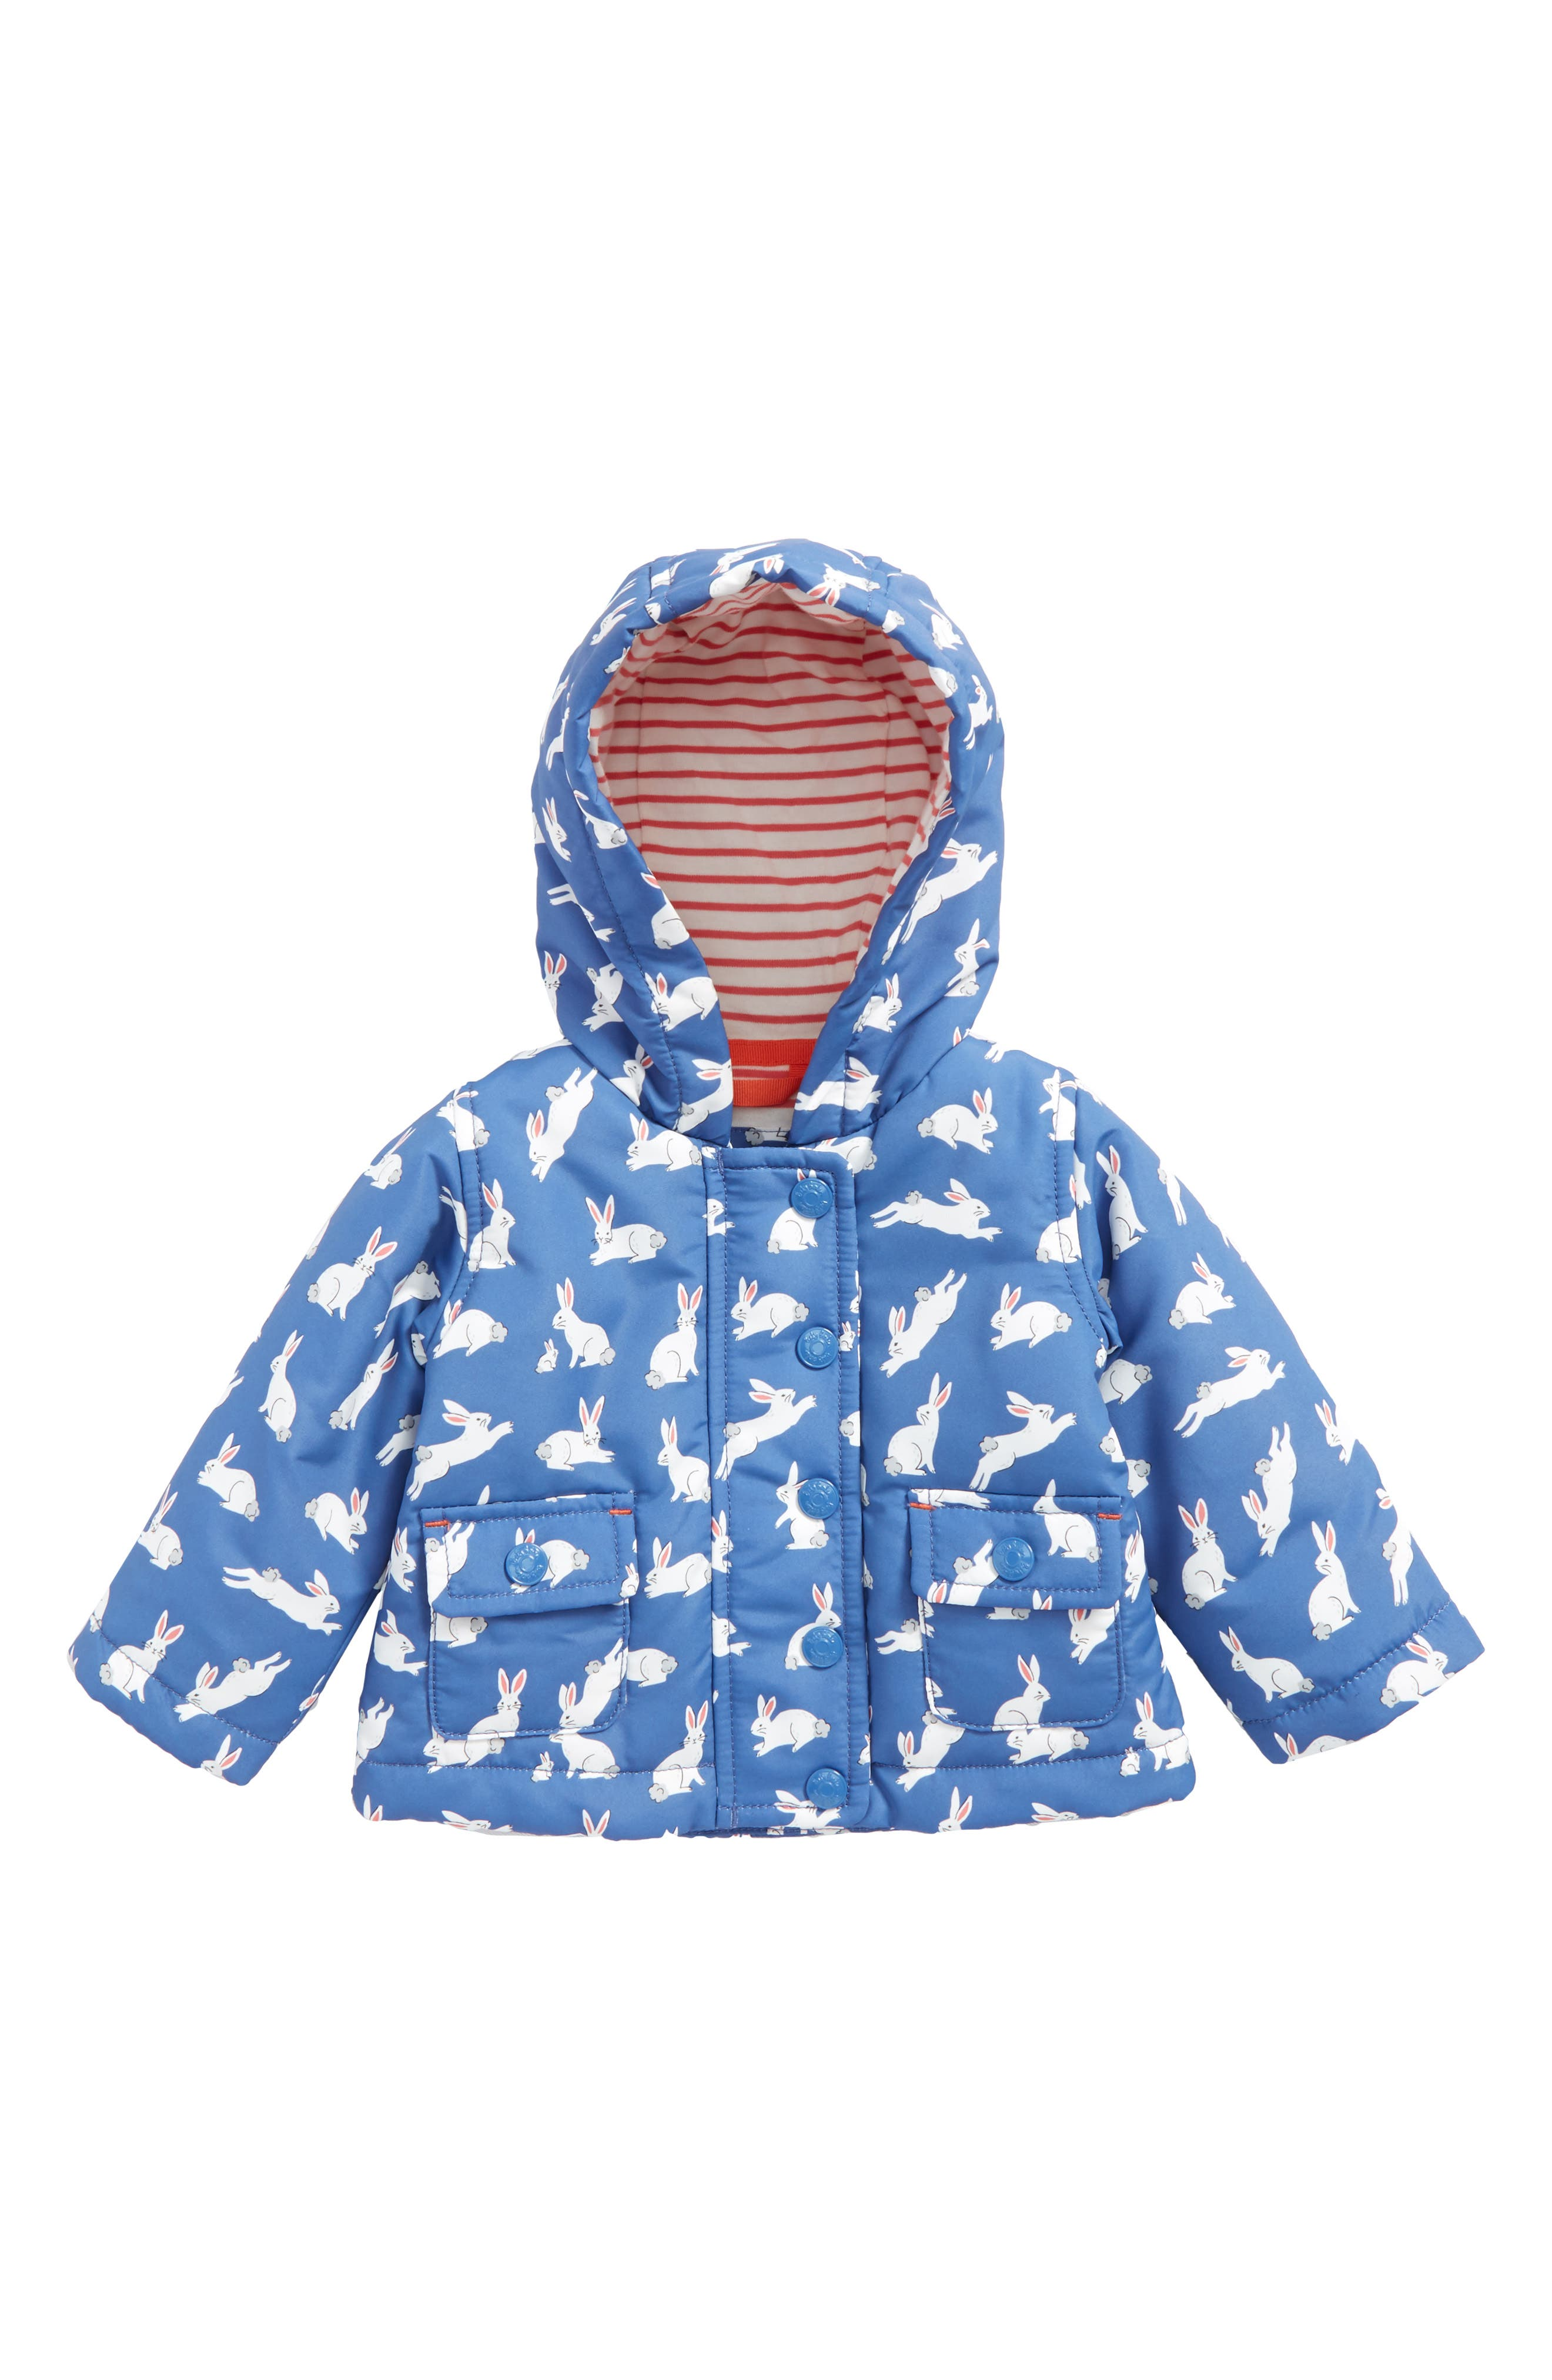 Main Image - Mini Boden Bunny Print Water-Resistant Hooded Coat (Baby Girls)